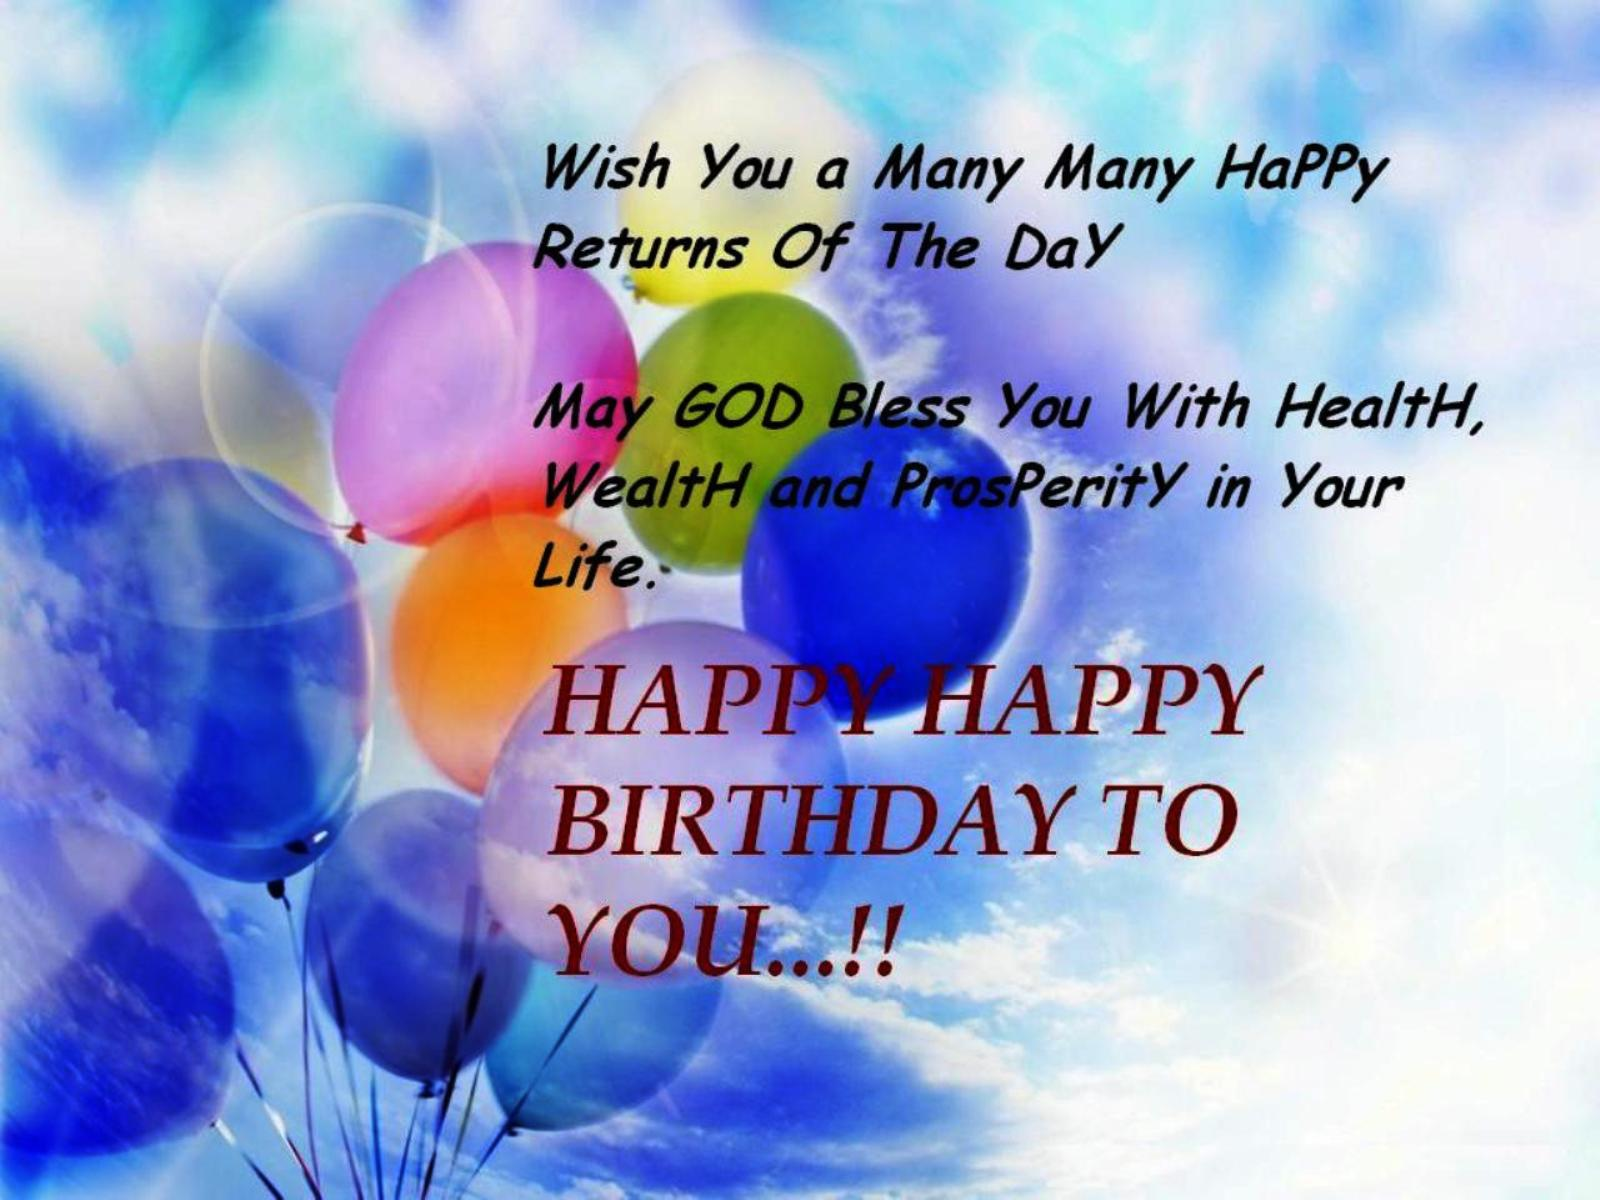 birthday quotes quotes ; birthday-card-quotes-for-grandma-best-of-best-birthday-wishes-quotes-fair-63-best-s-birthday-of-birthday-card-quotes-for-grandma